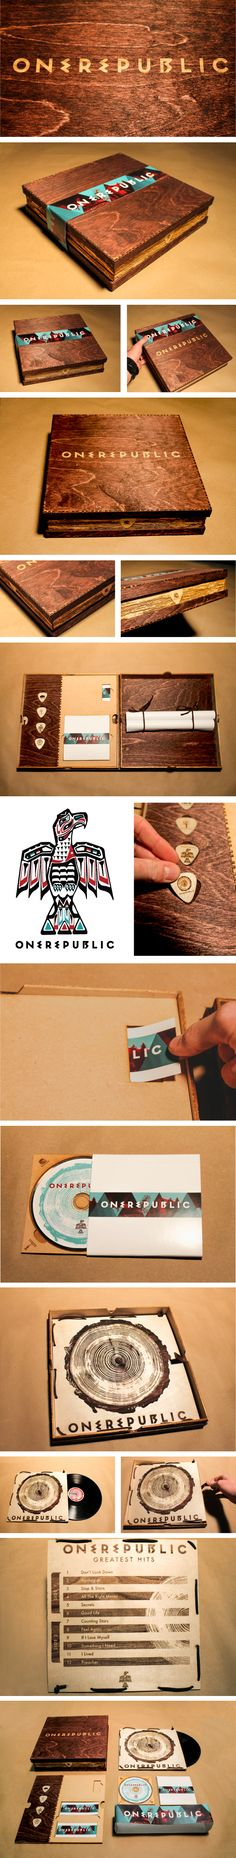 *O* OneRepublic Special Edition Album by Jordan Anderson, via Behance OMG I want it!!!